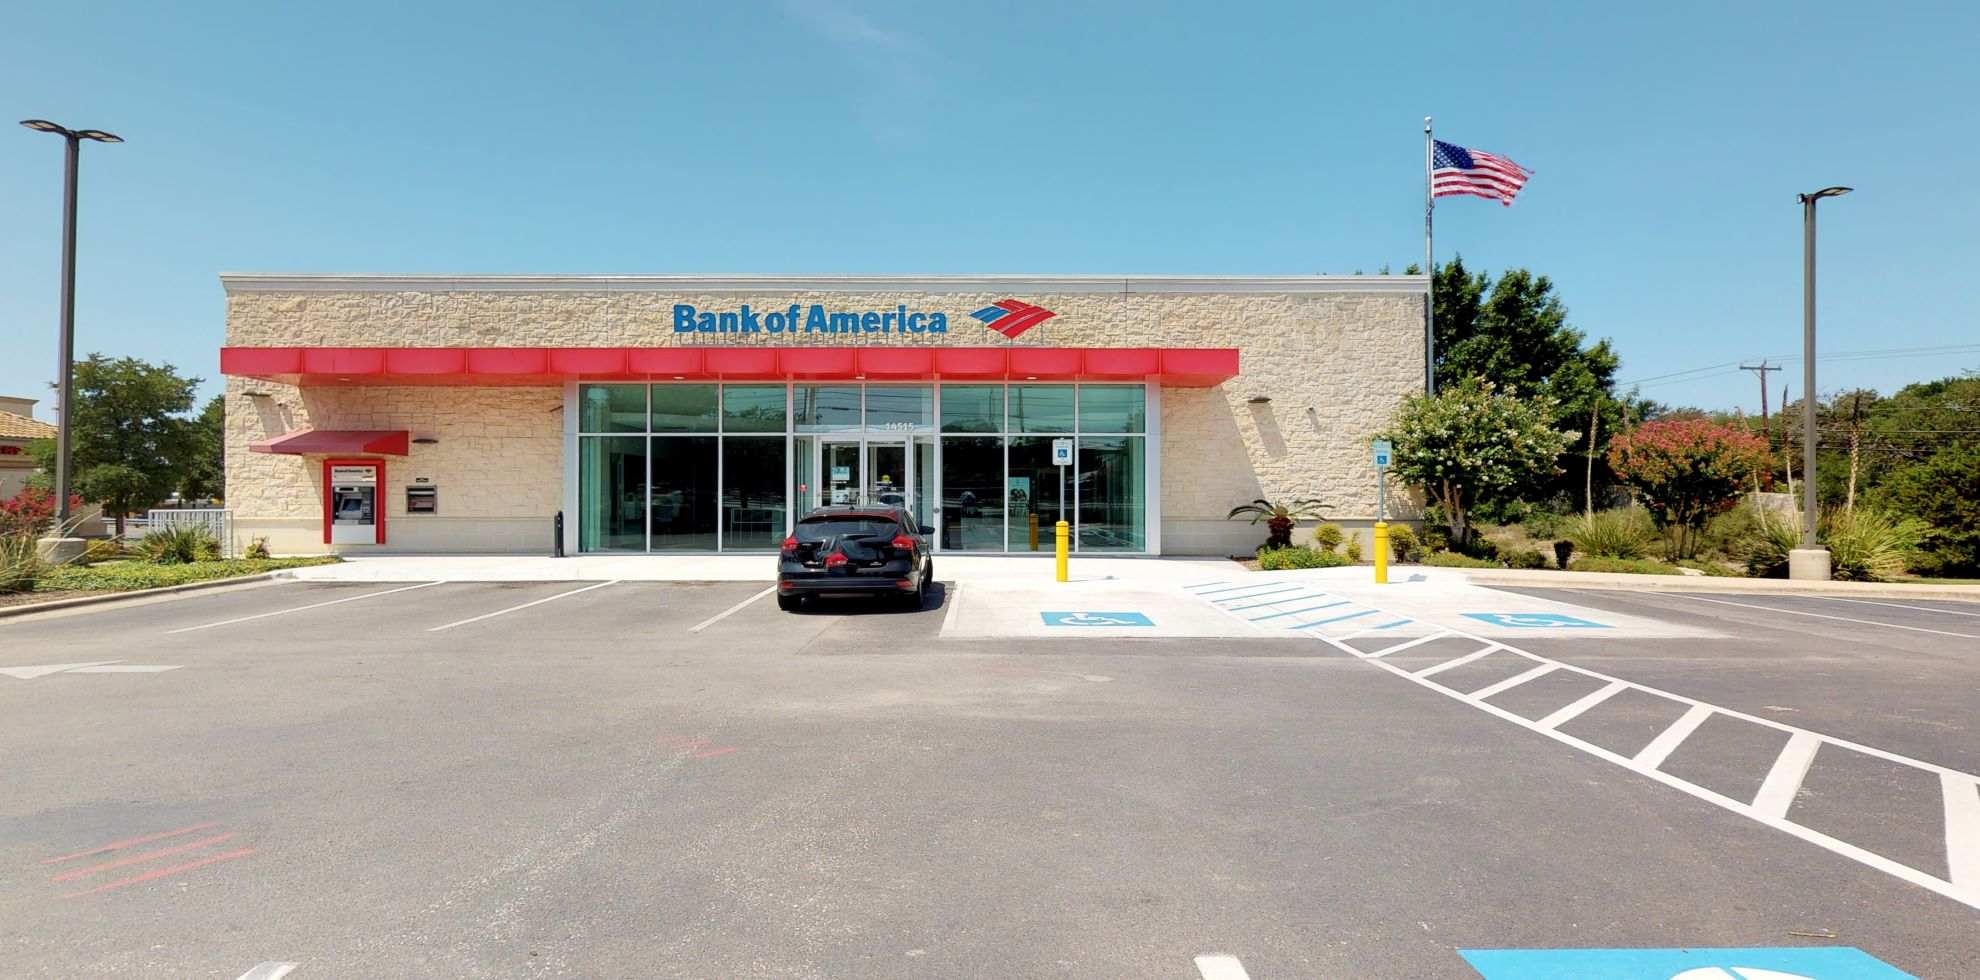 Bank of America financial center with drive-thru ATM   14515 NW Military Hwy, San Antonio, TX 78231